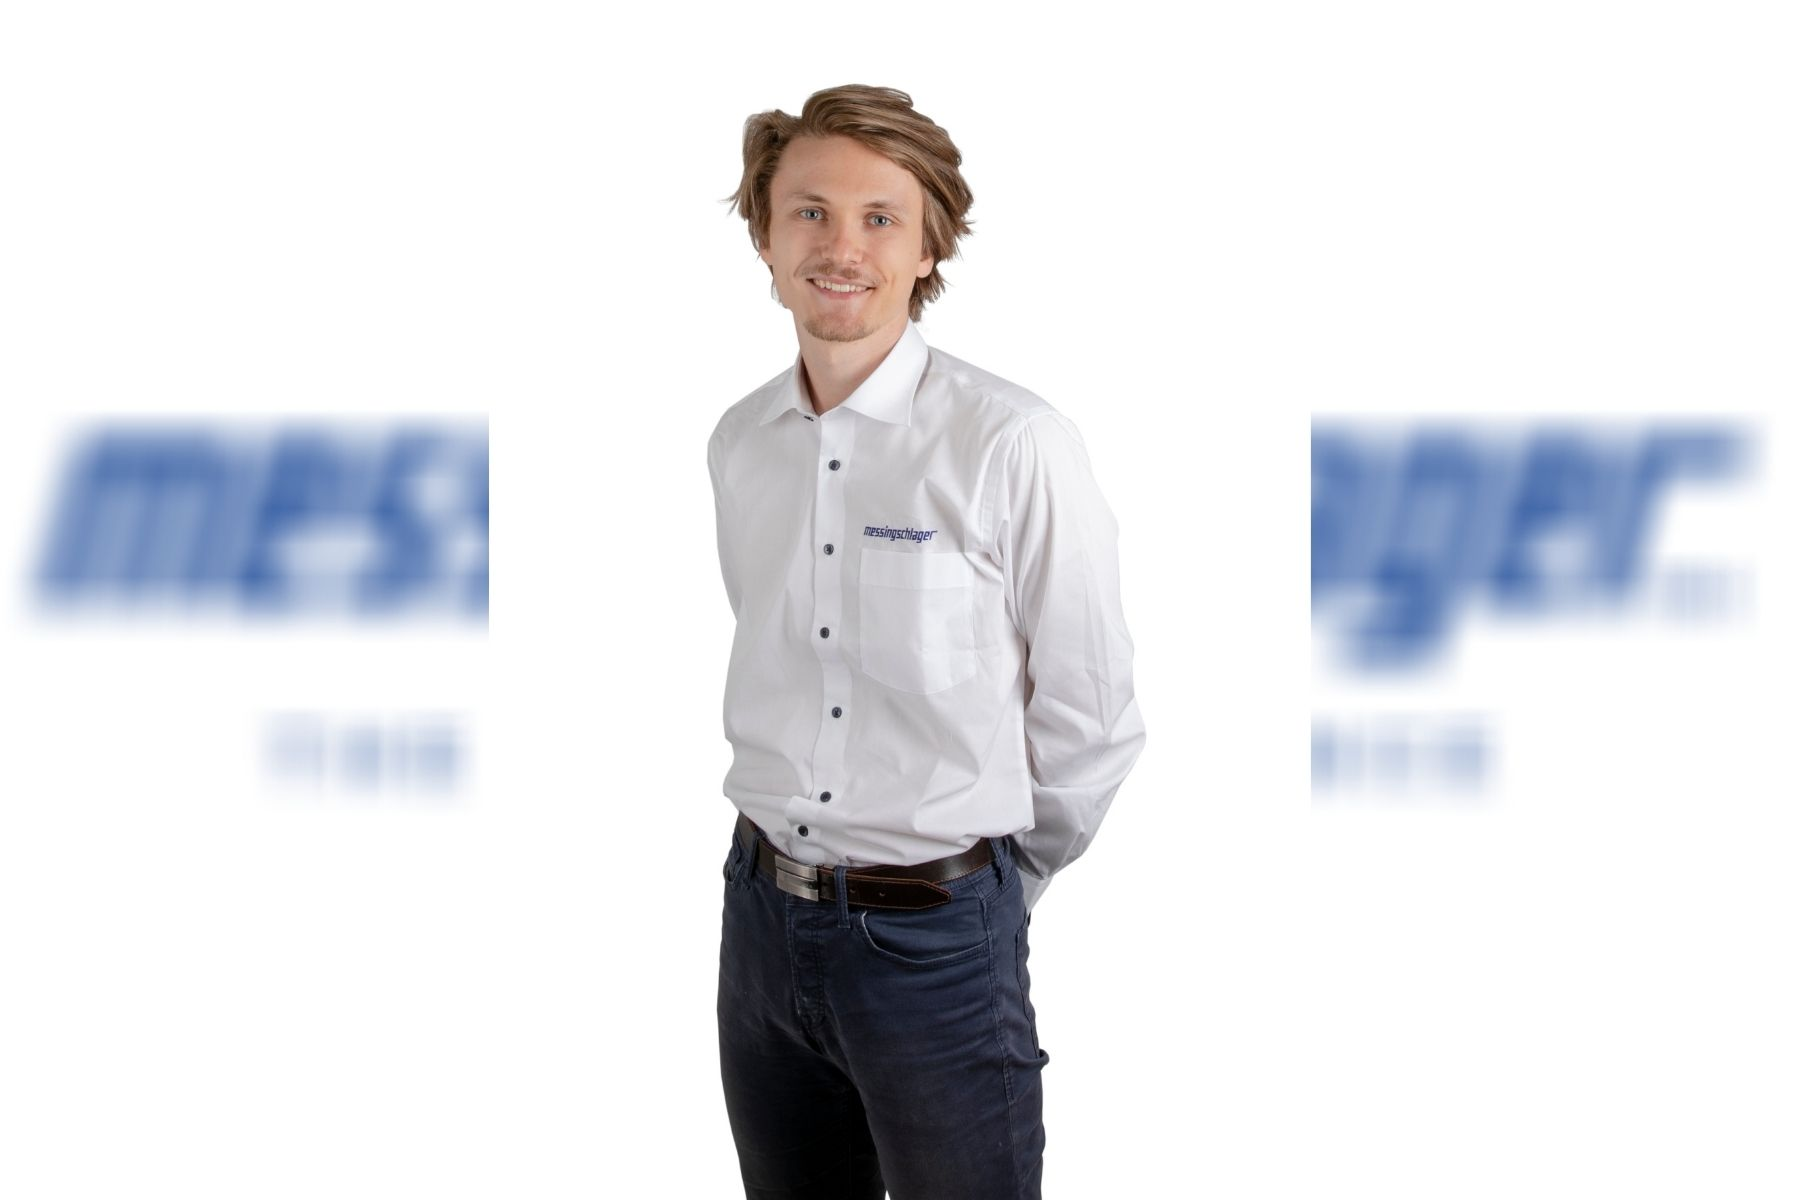 Neuer Junior Sales Manager bei Messingschlager